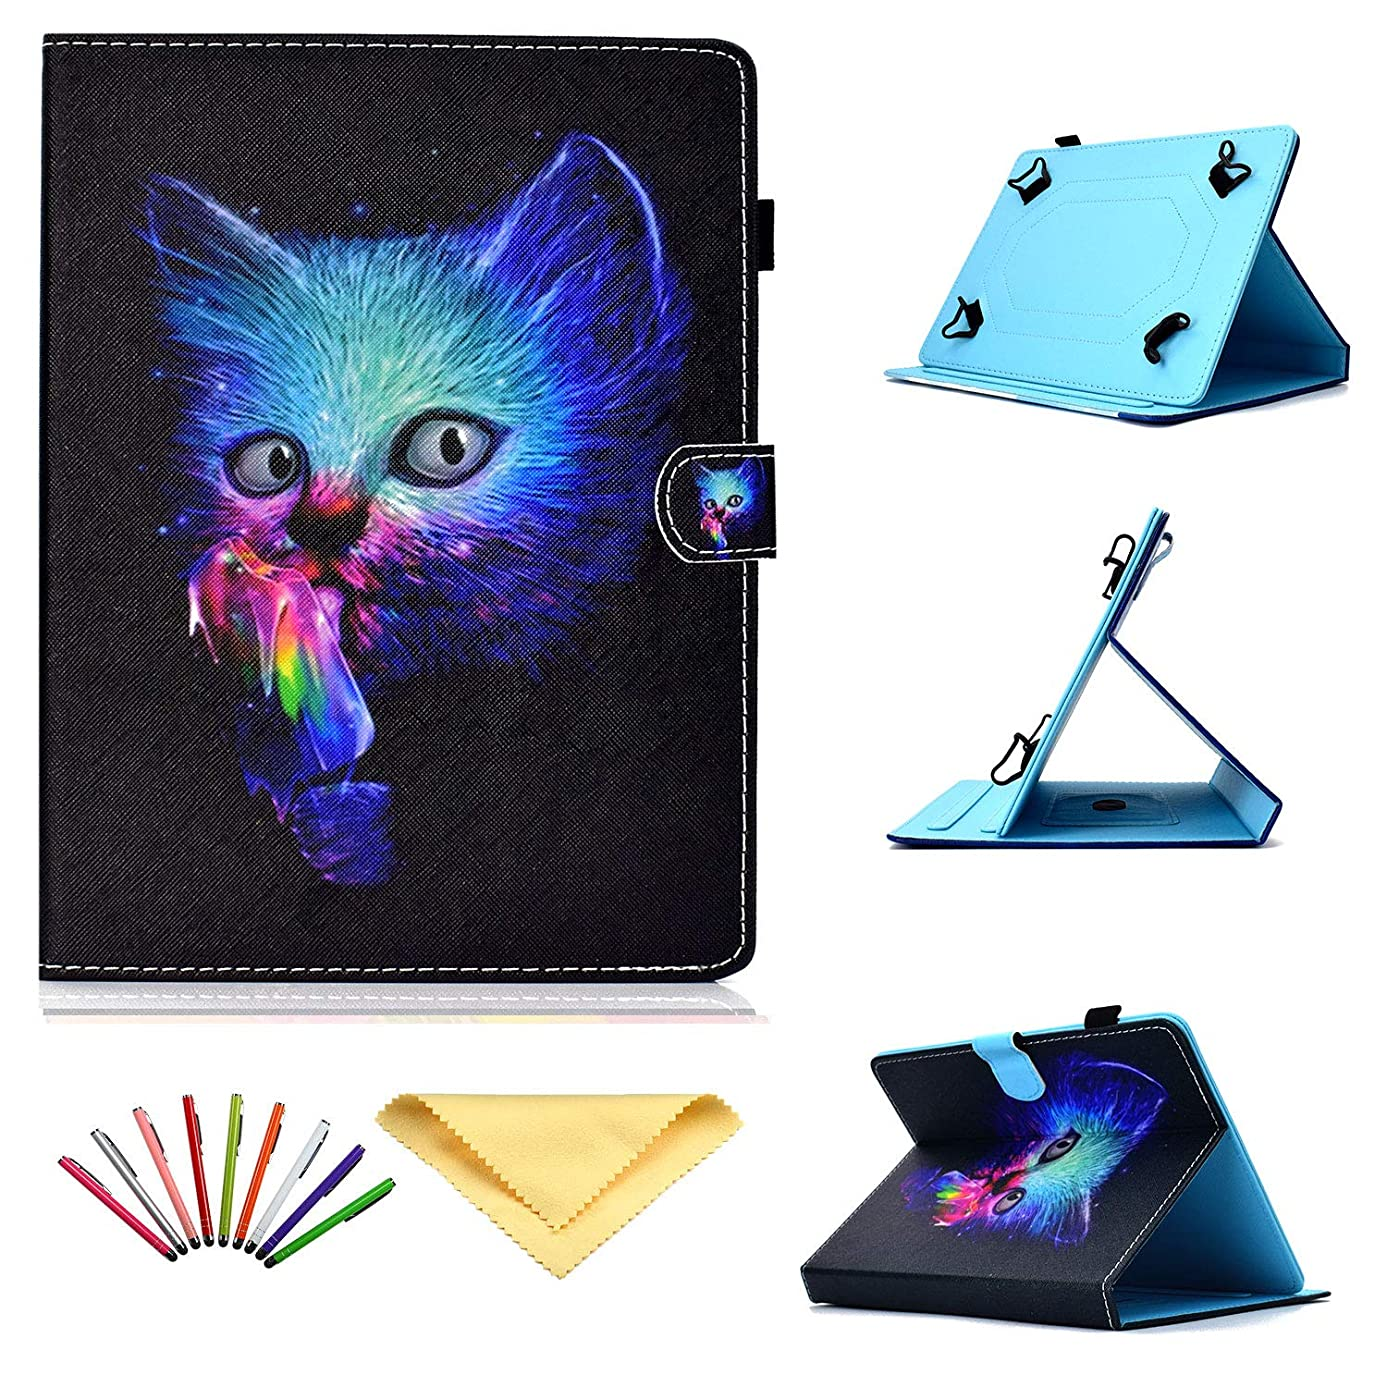 Uliking Universal Case for 8 inch Tablets, Stand Cover with Pencil Holderfor 7.9